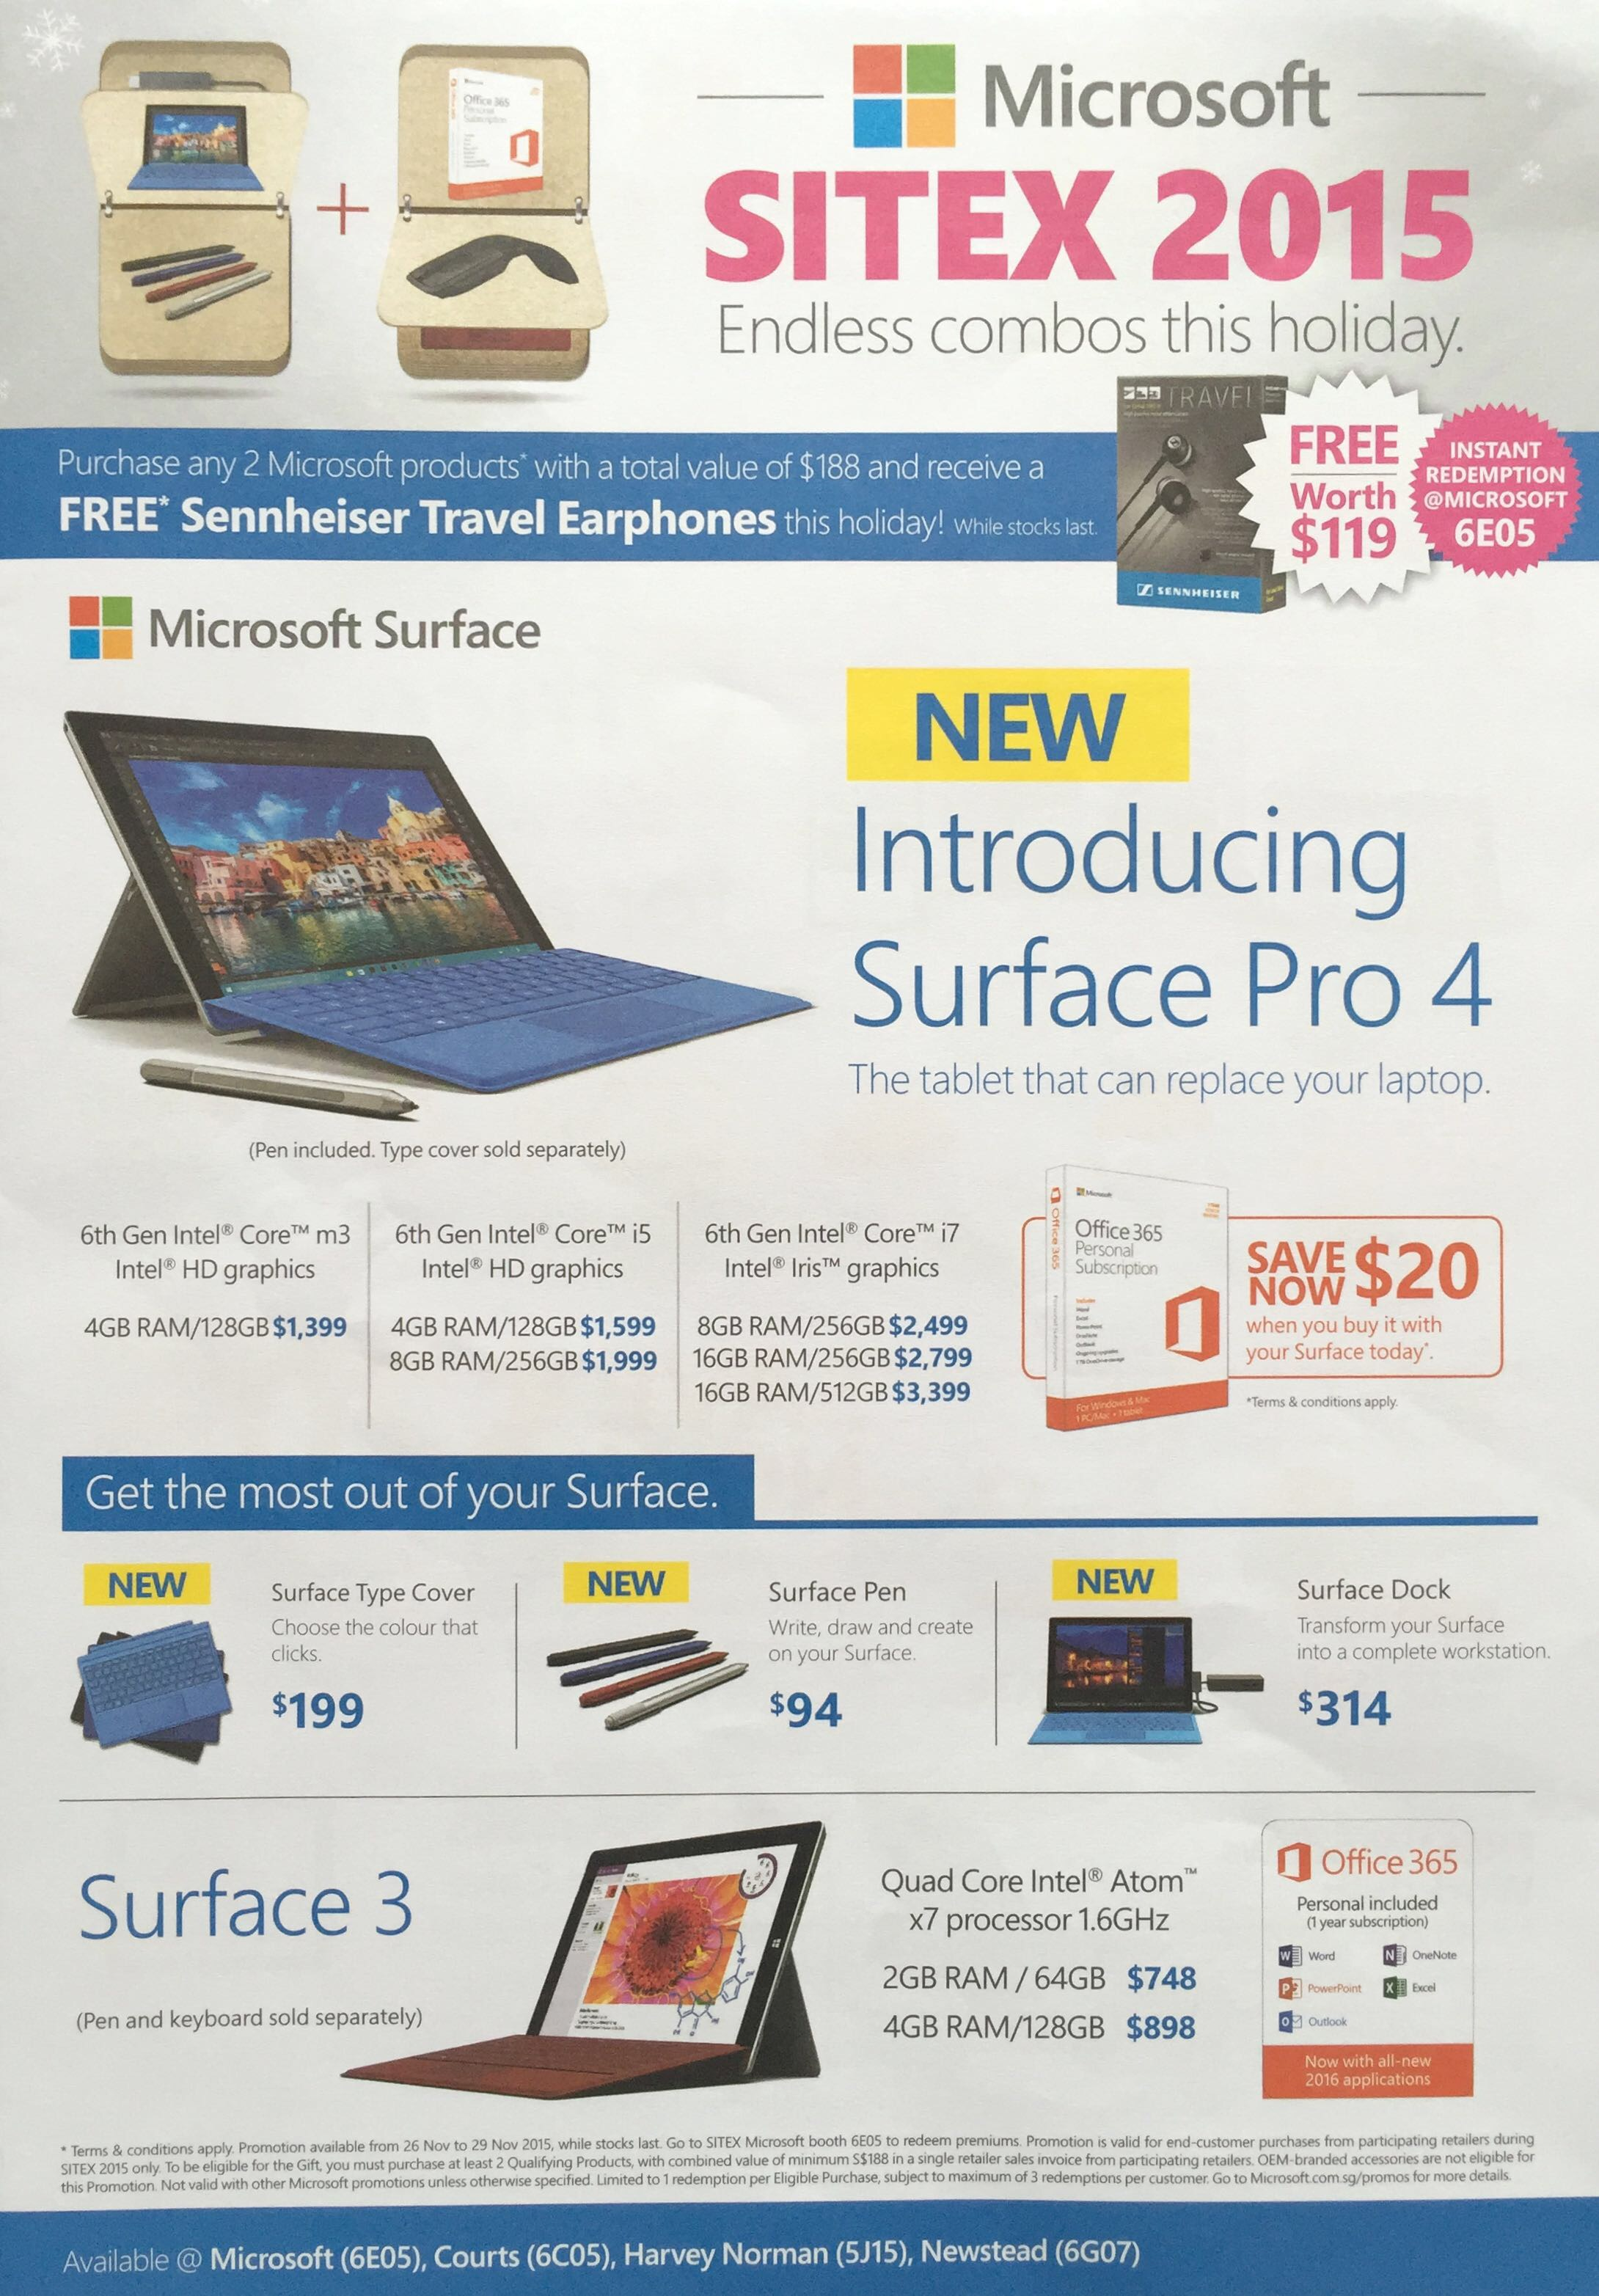 Microsoft @ SITEX 2015 - Surface Pro 4 and 3